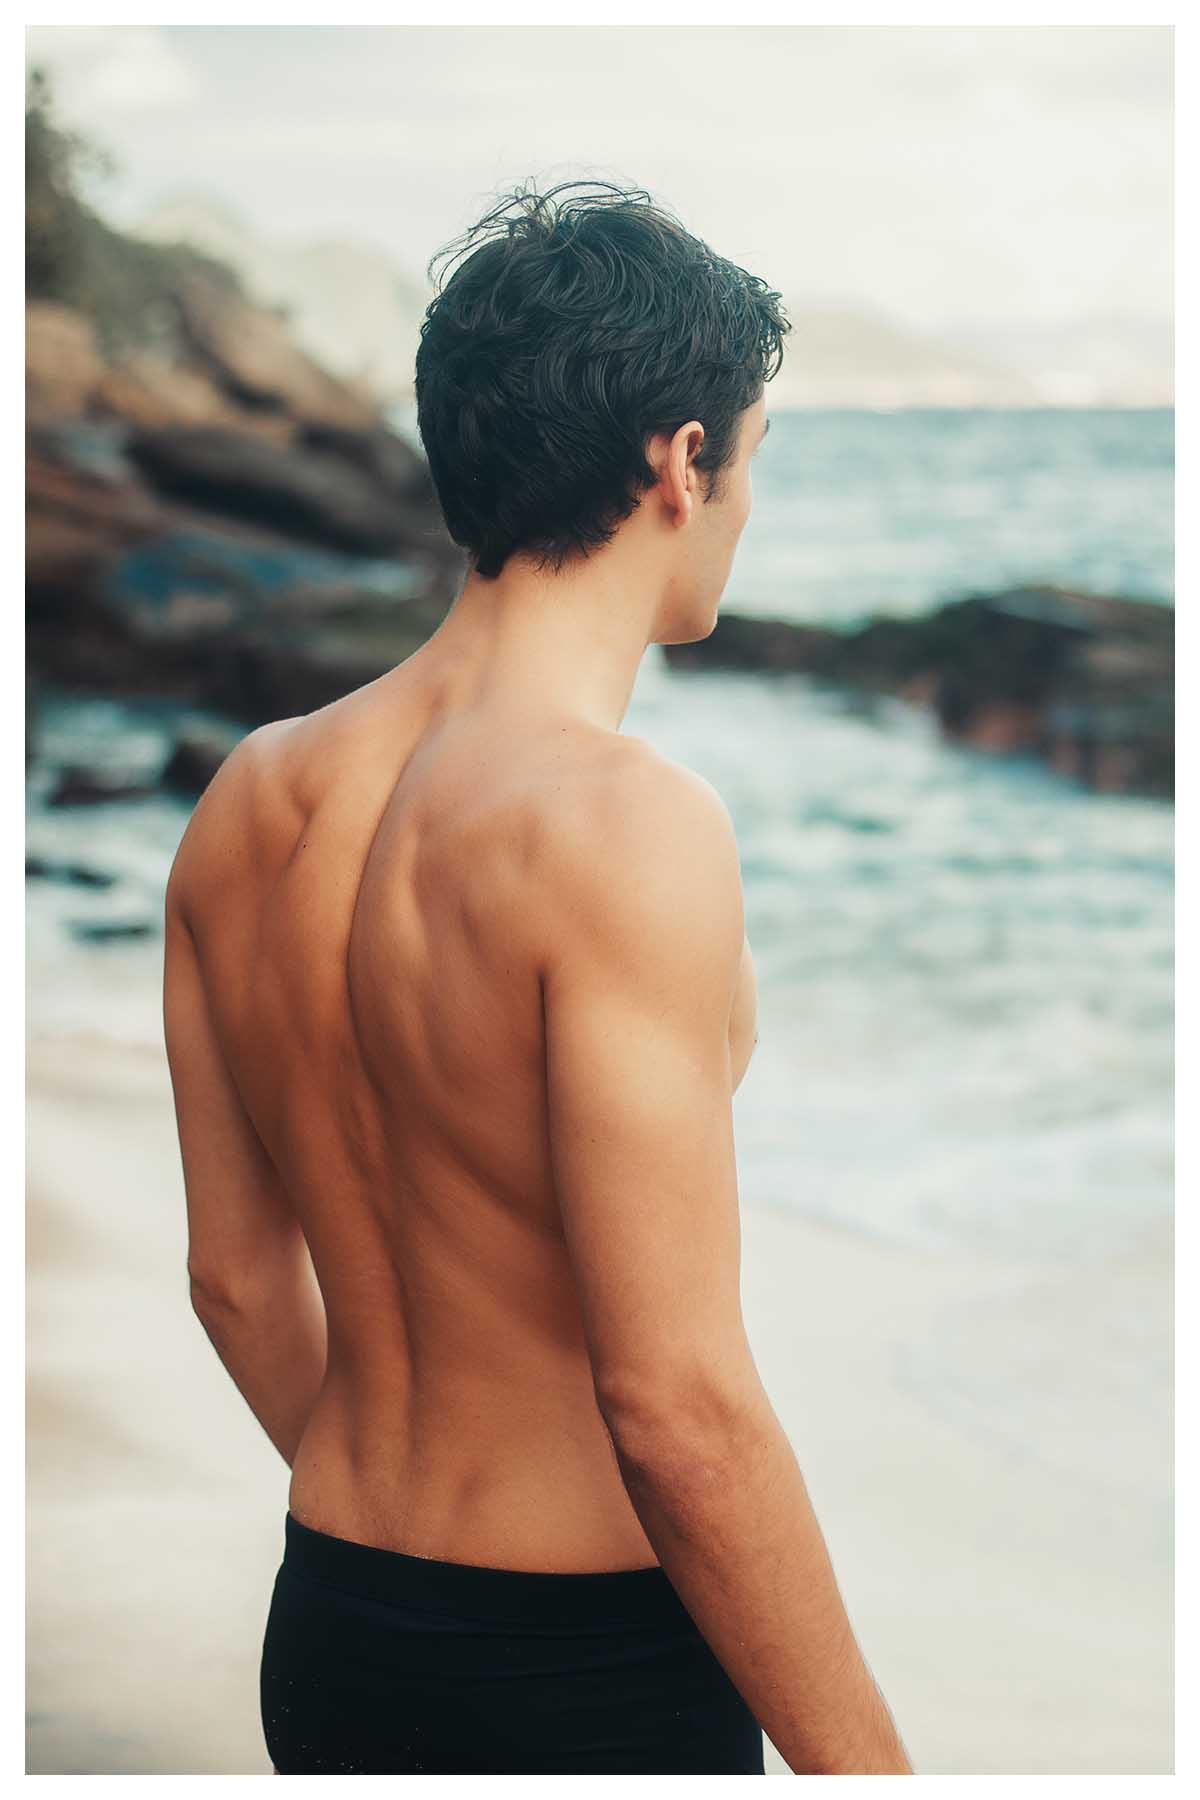 Bruno Cameron by Rodrigo Almeida for Brazilian Male Model